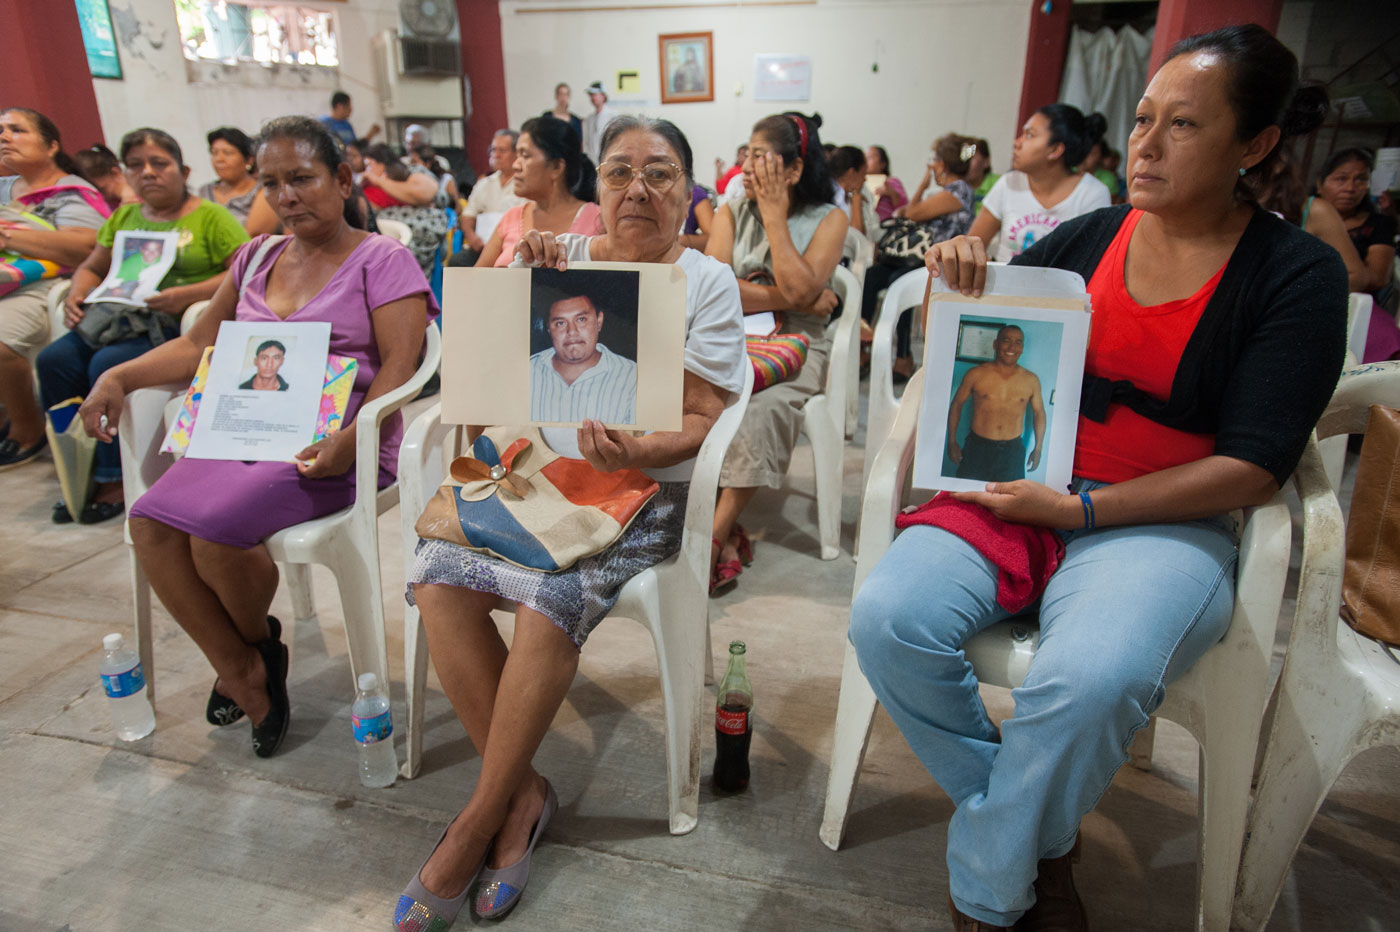 mexico how 43 students disappeared in the night